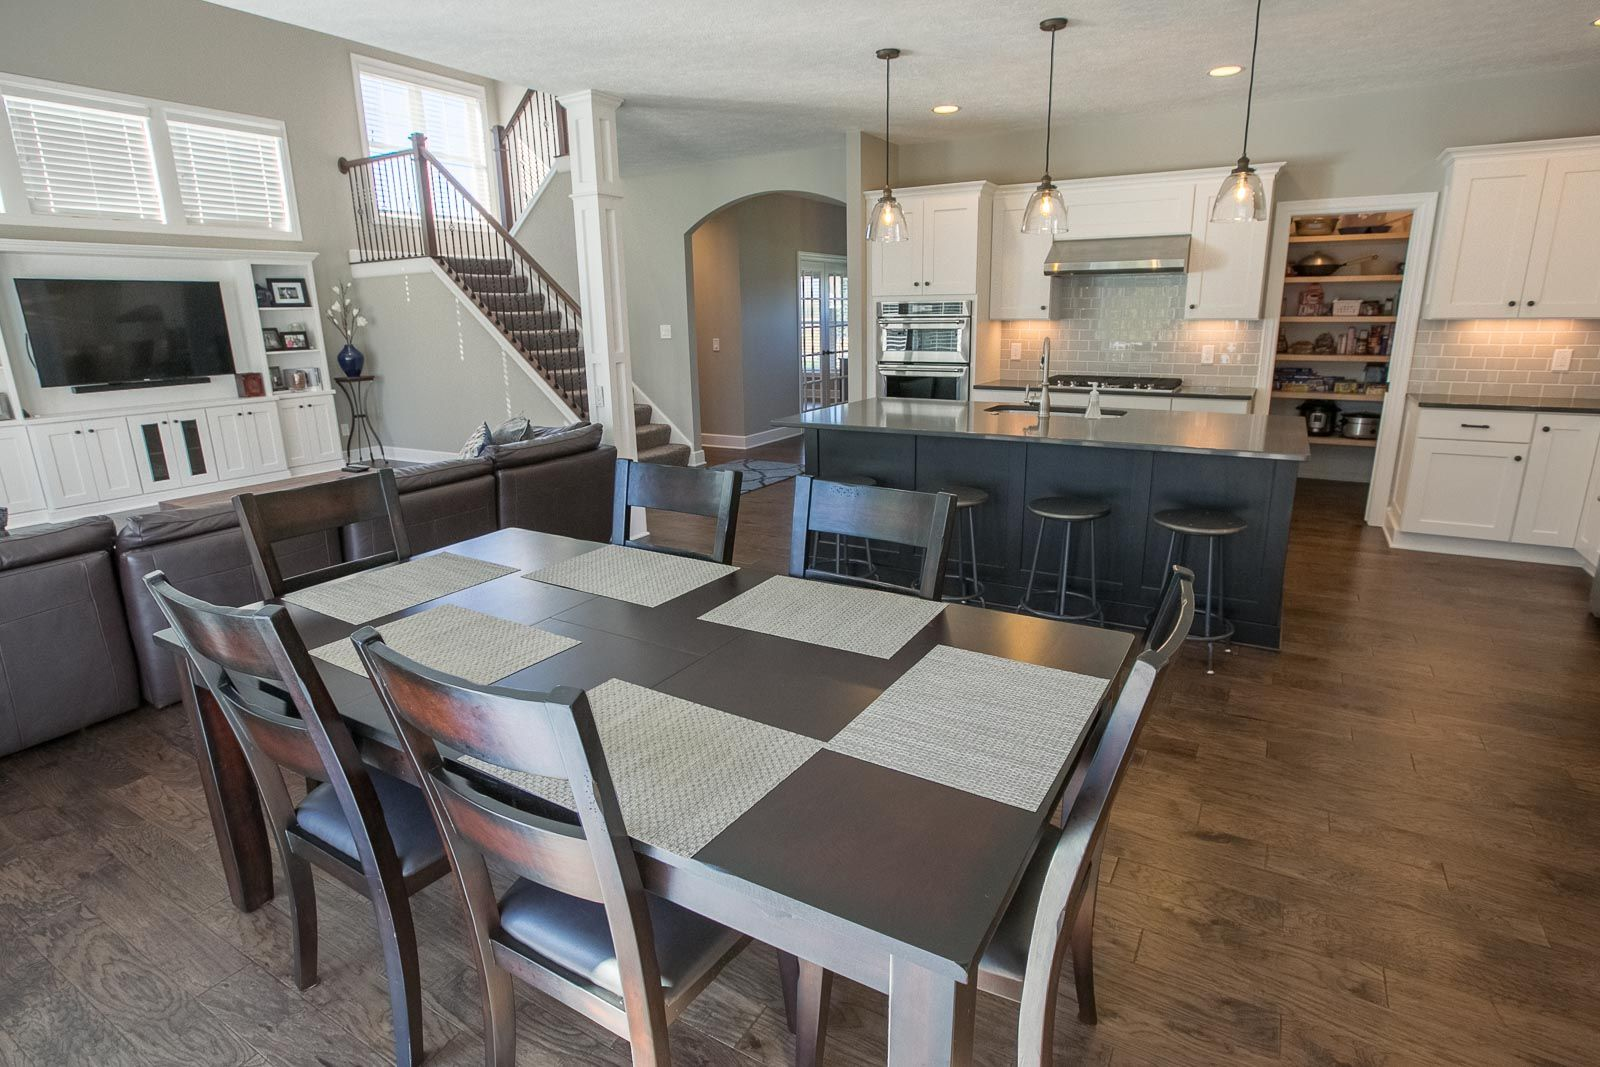 Kitchen featured in the Maplewood C1 By Classic Homes in Akron, OH